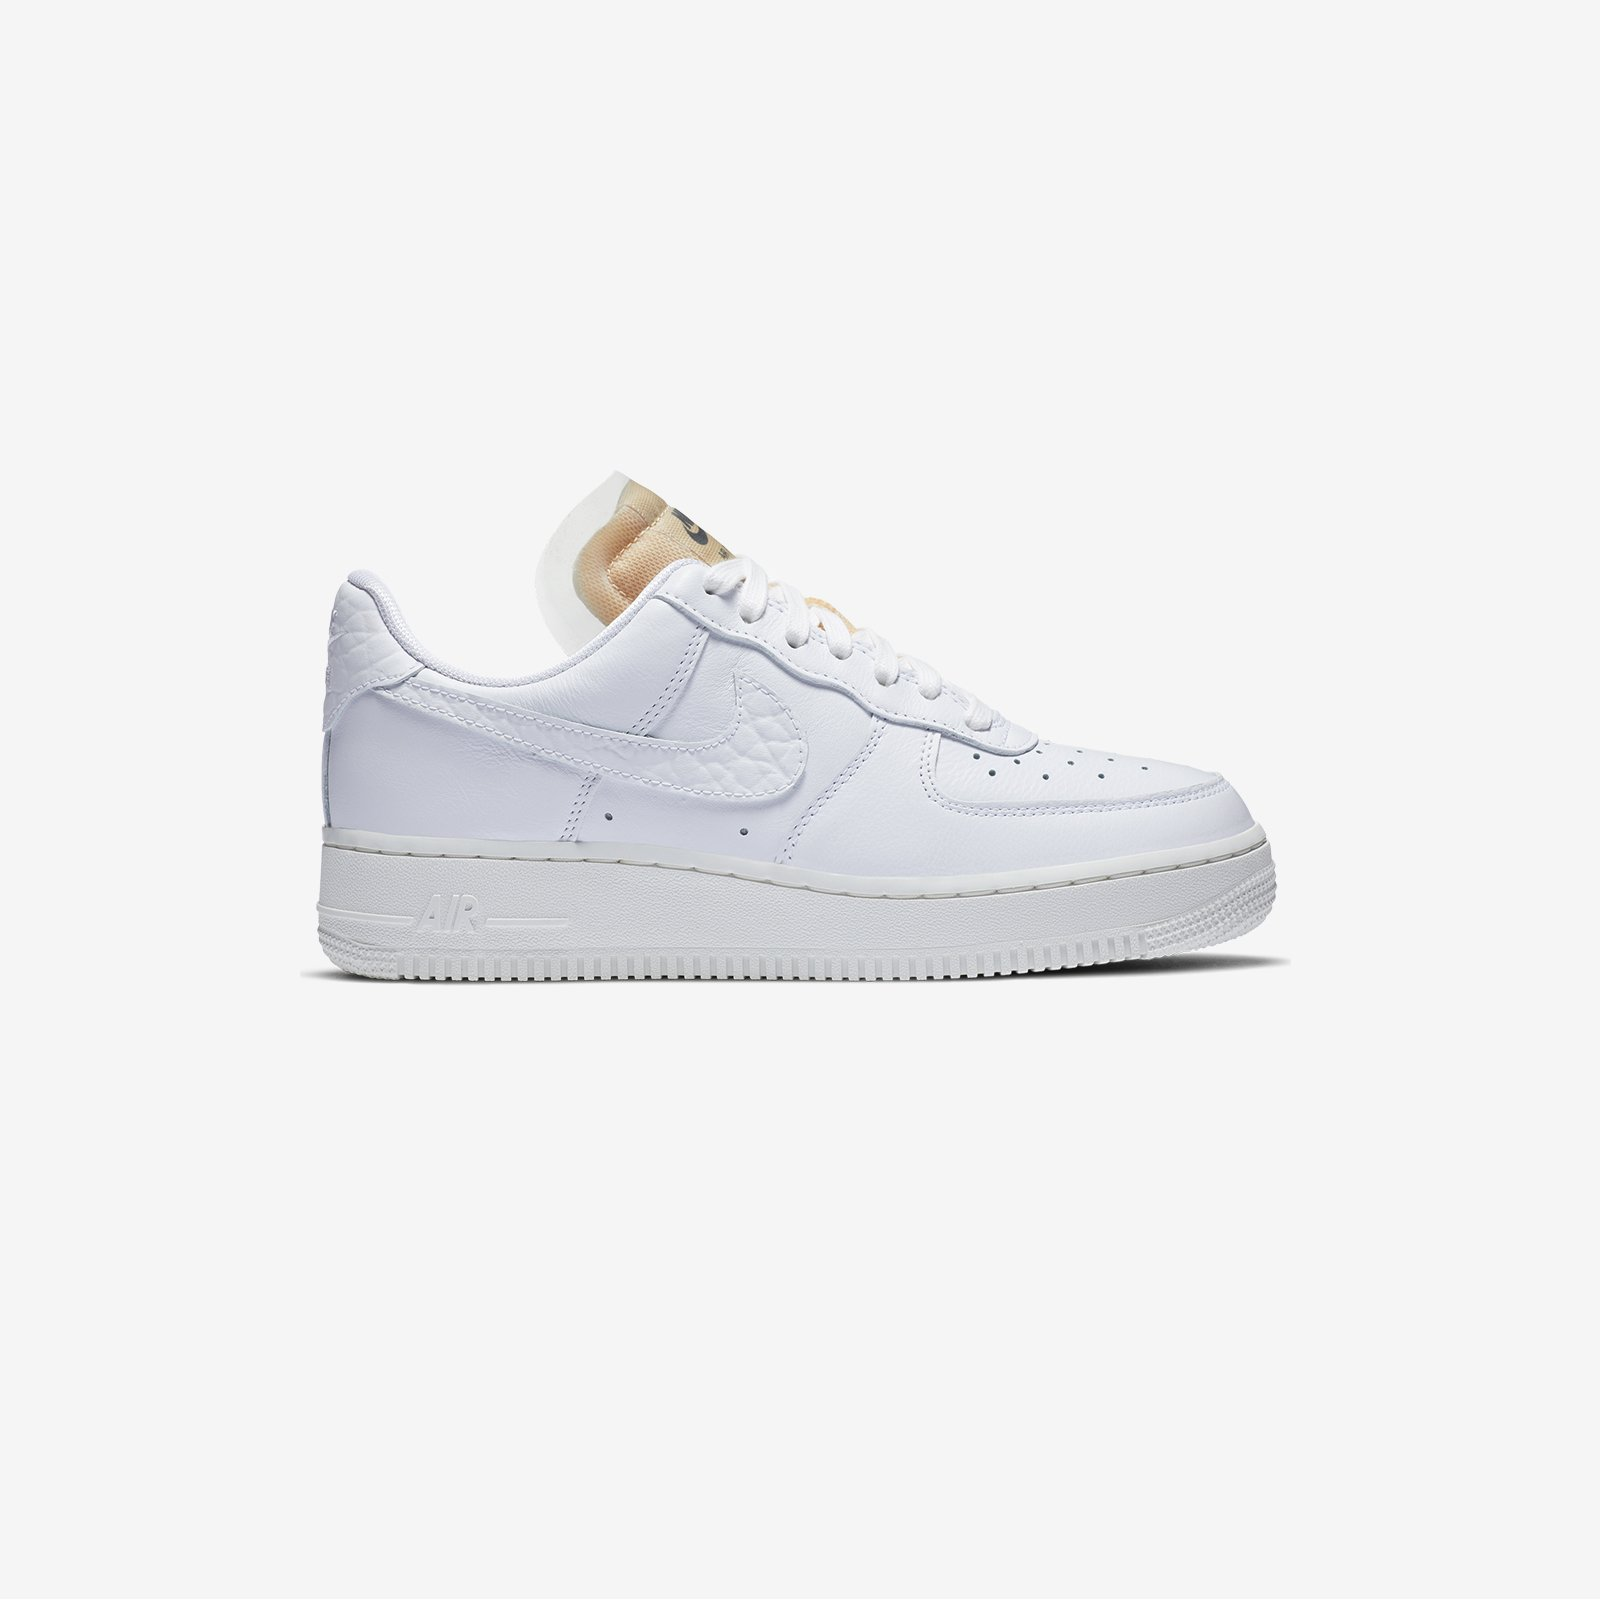 2020 Nike Air Force 1 Low 07 LX Bling White Summit White